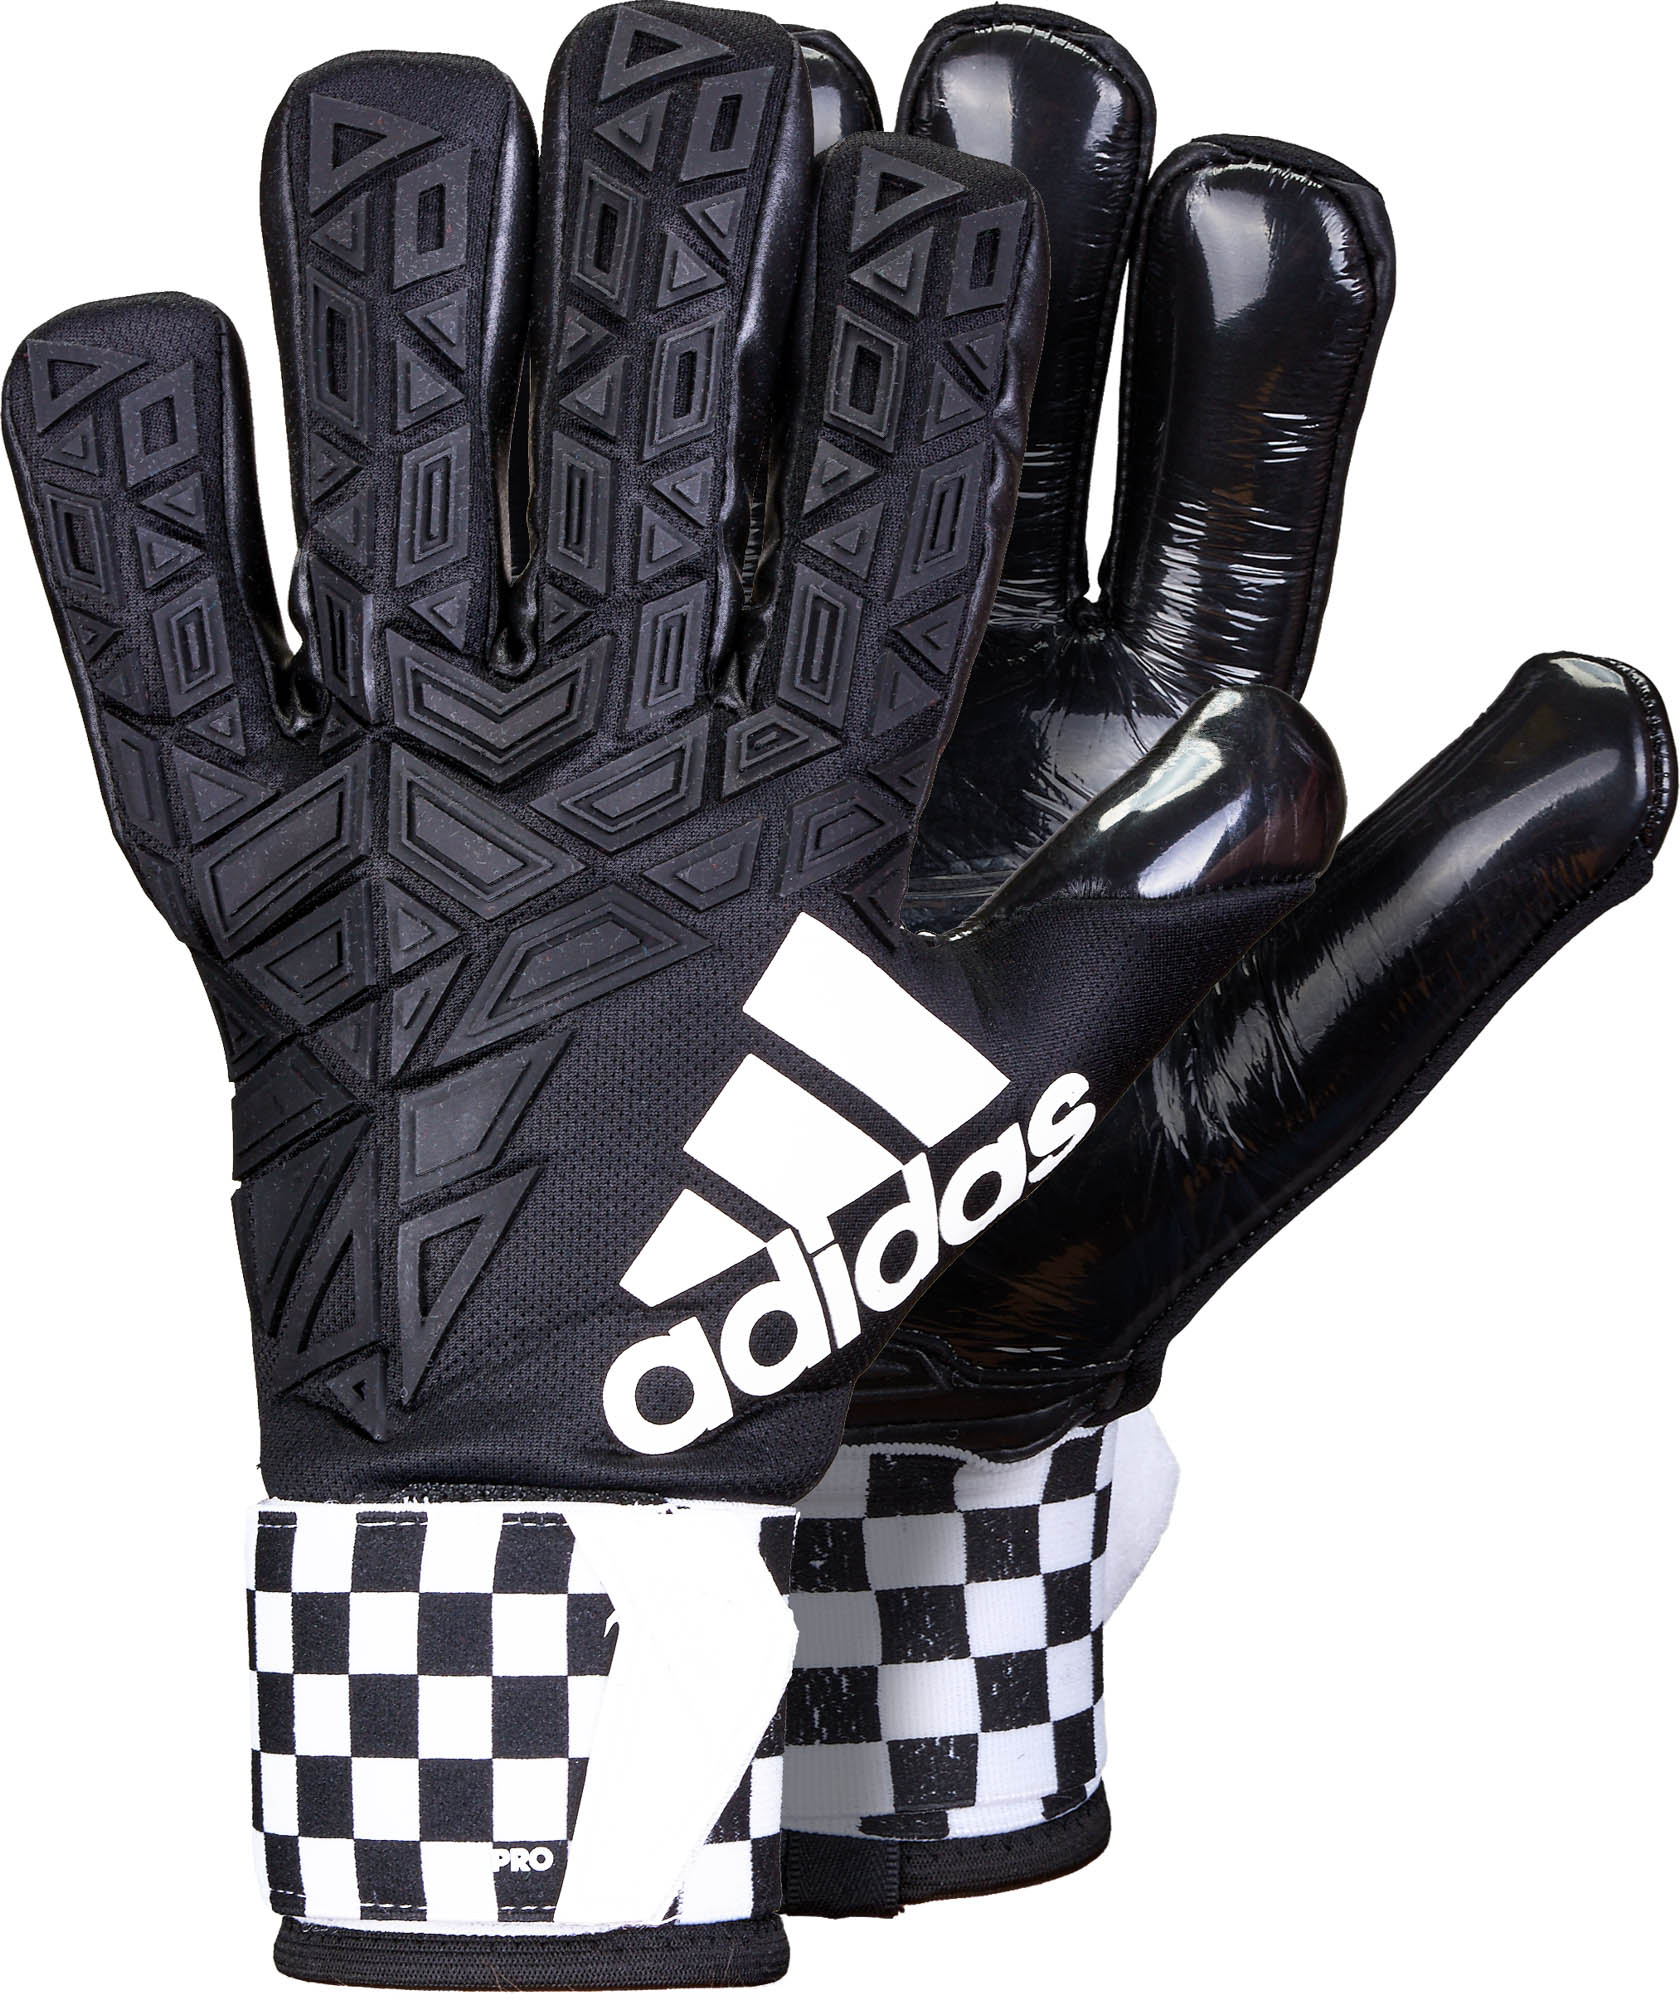 the best attitude cd923 aef27 ireland adidas protator zones pro wc gloves cc8d7 4d901